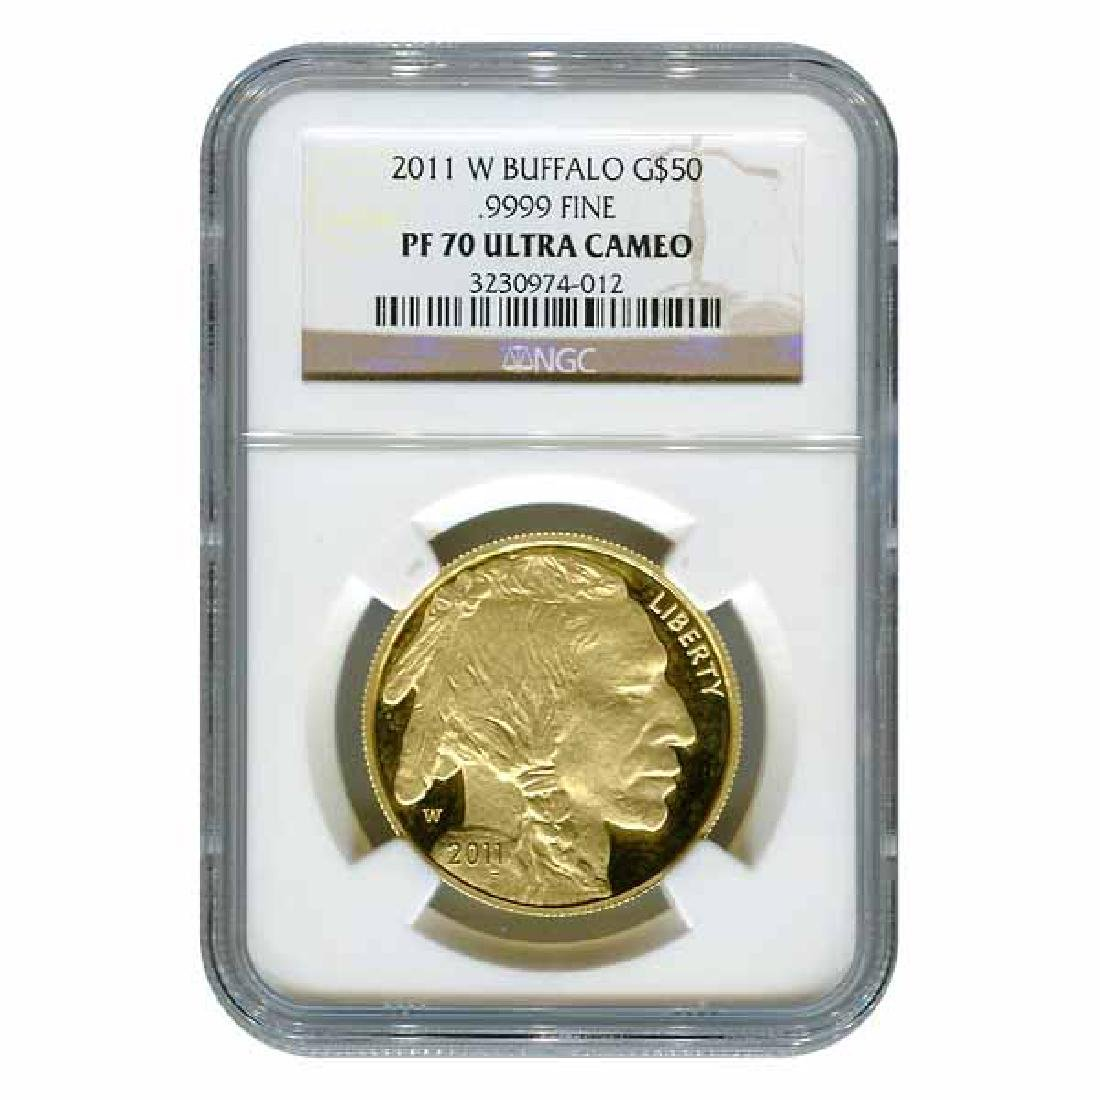 Certified Proof Buffalo Gold Coin 2011-W One Ounce PF70